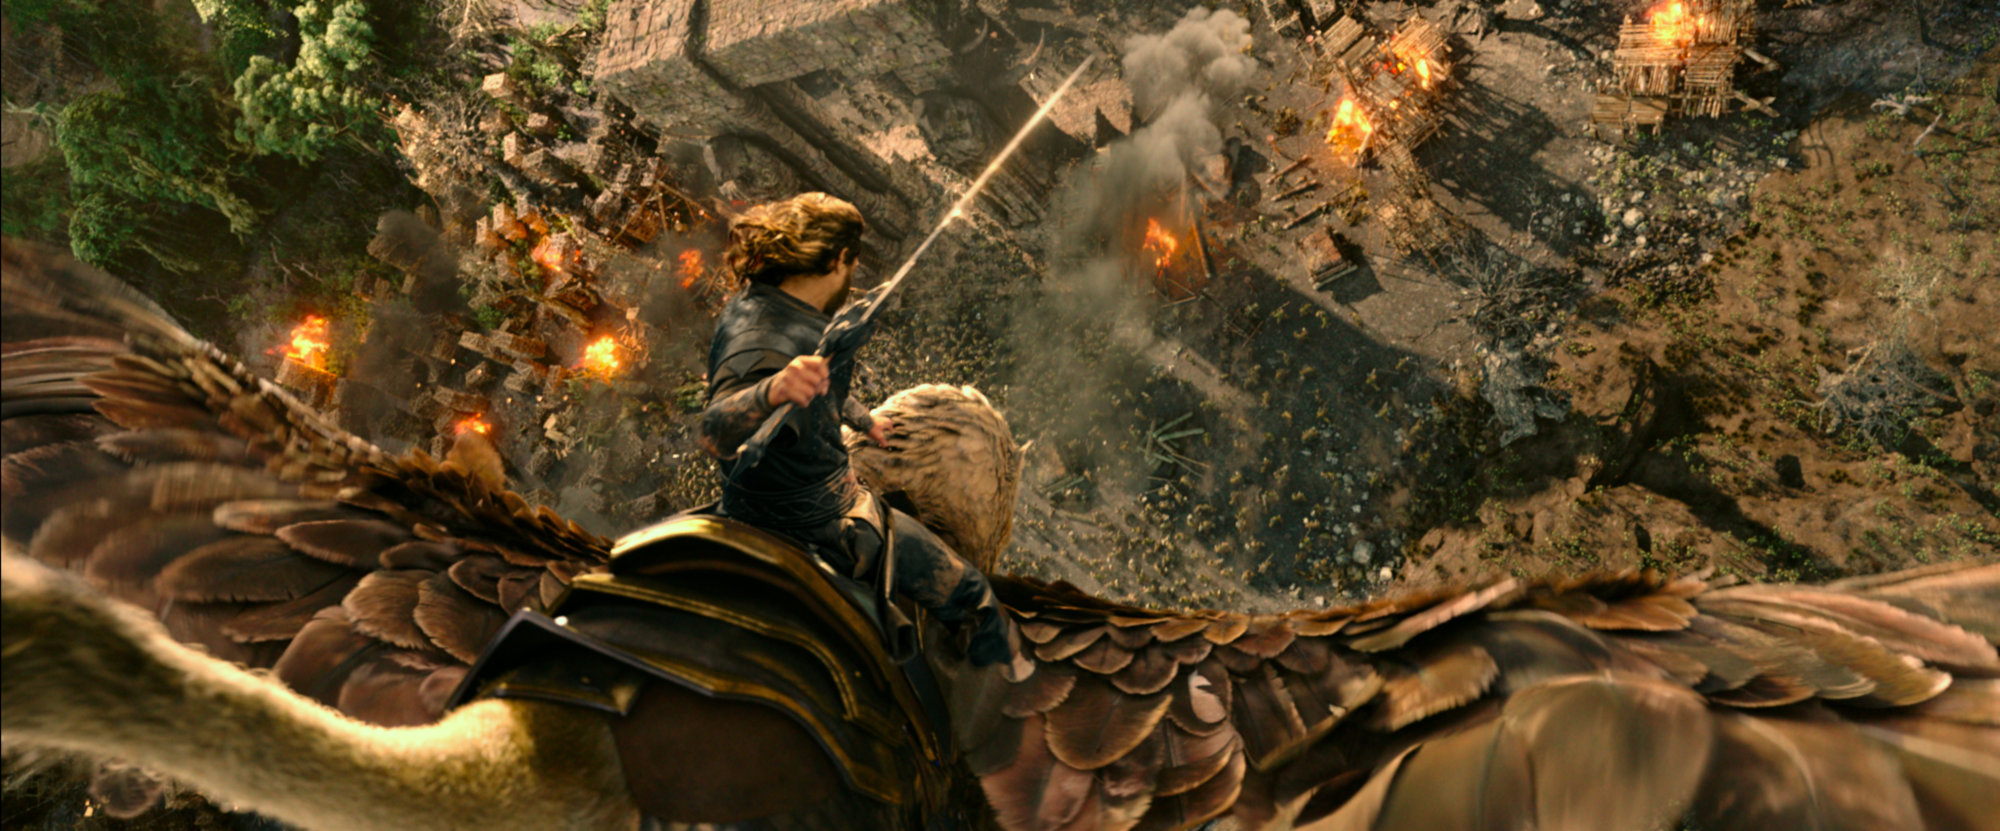 warcraft-review-ing09-20160611